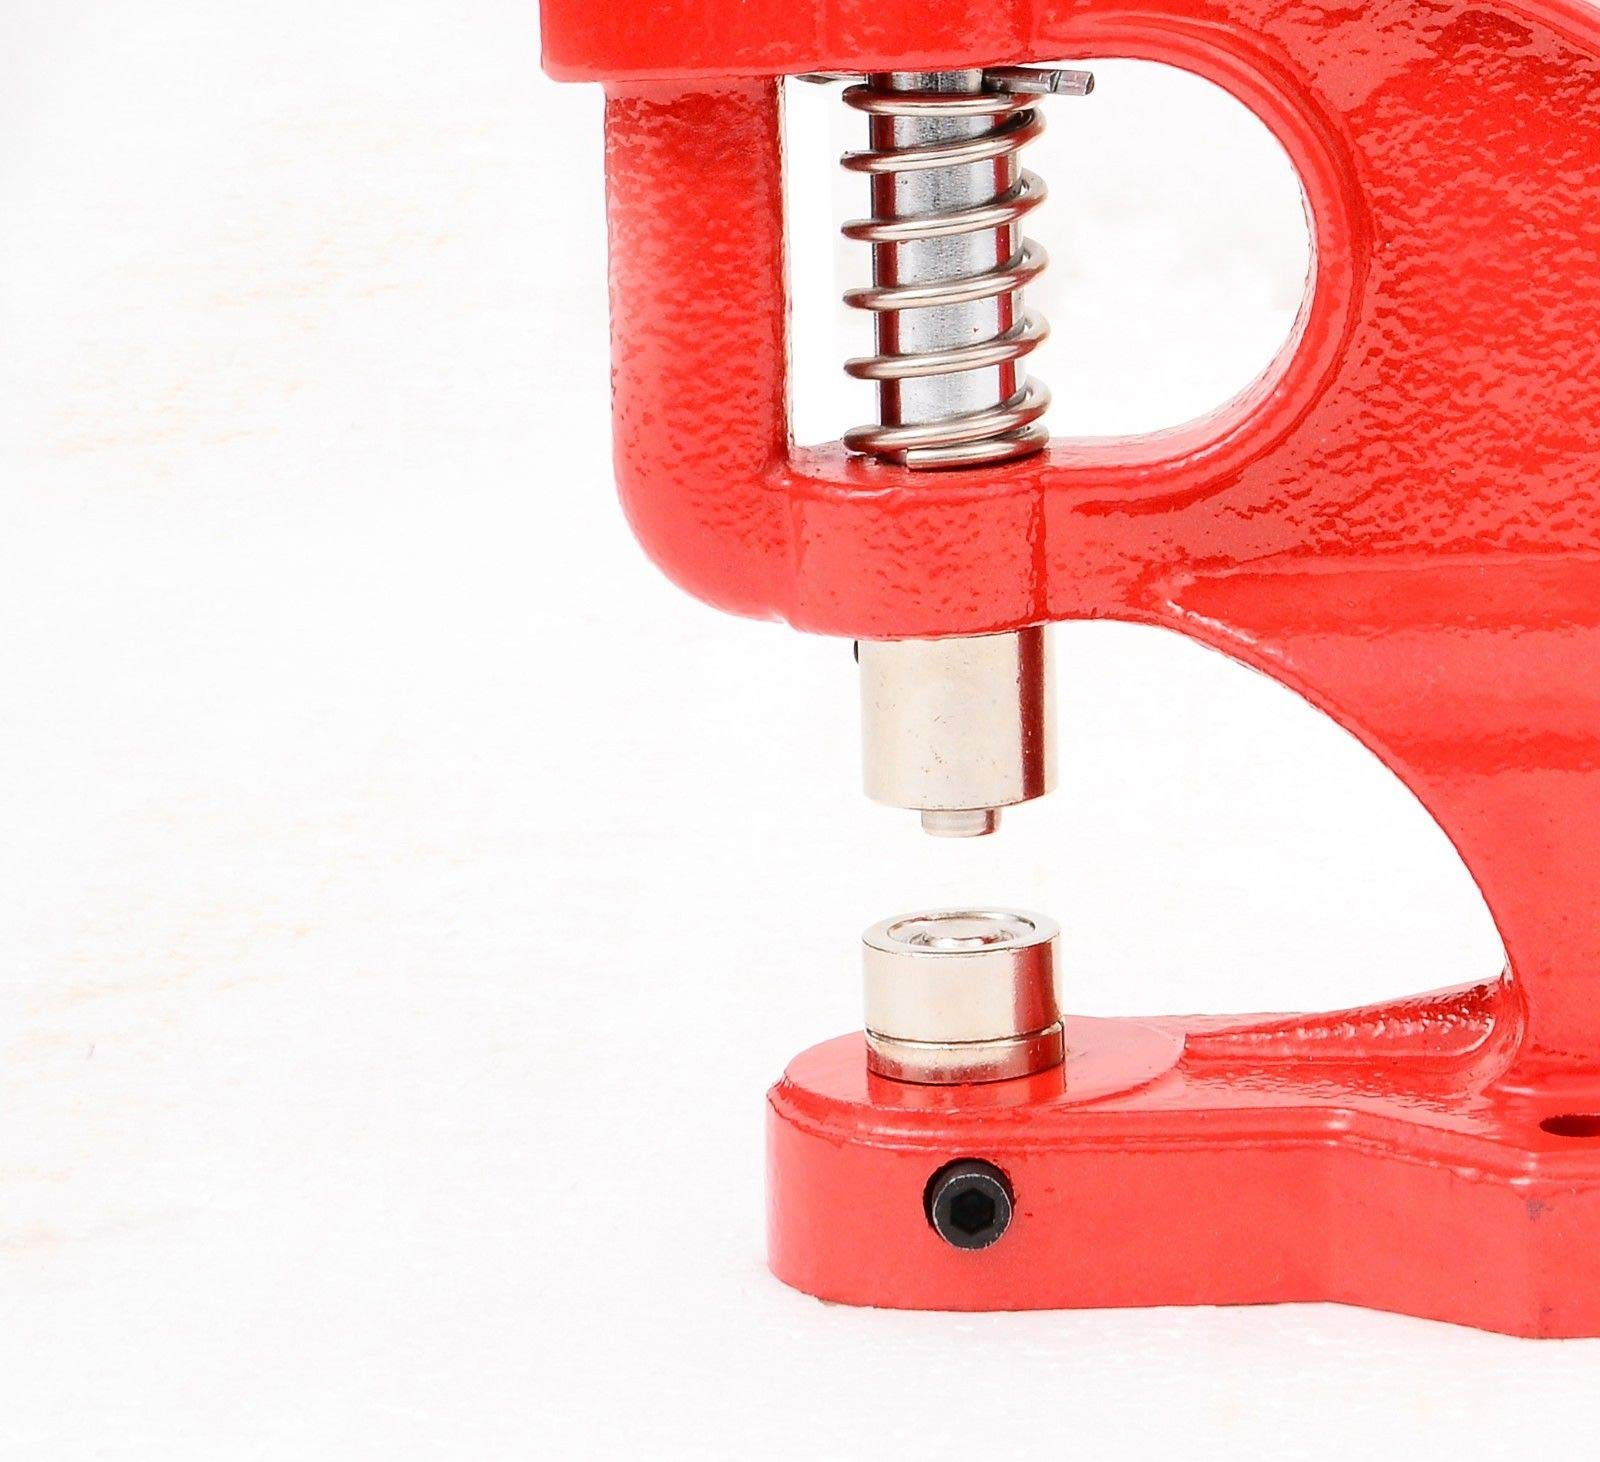 Tenive Heavy Duty Eyelet Maker Grommet Machine Hand Press Hole Punch Tool with 3 Dies (#0 #2 #4) and 900 Grommets-Red